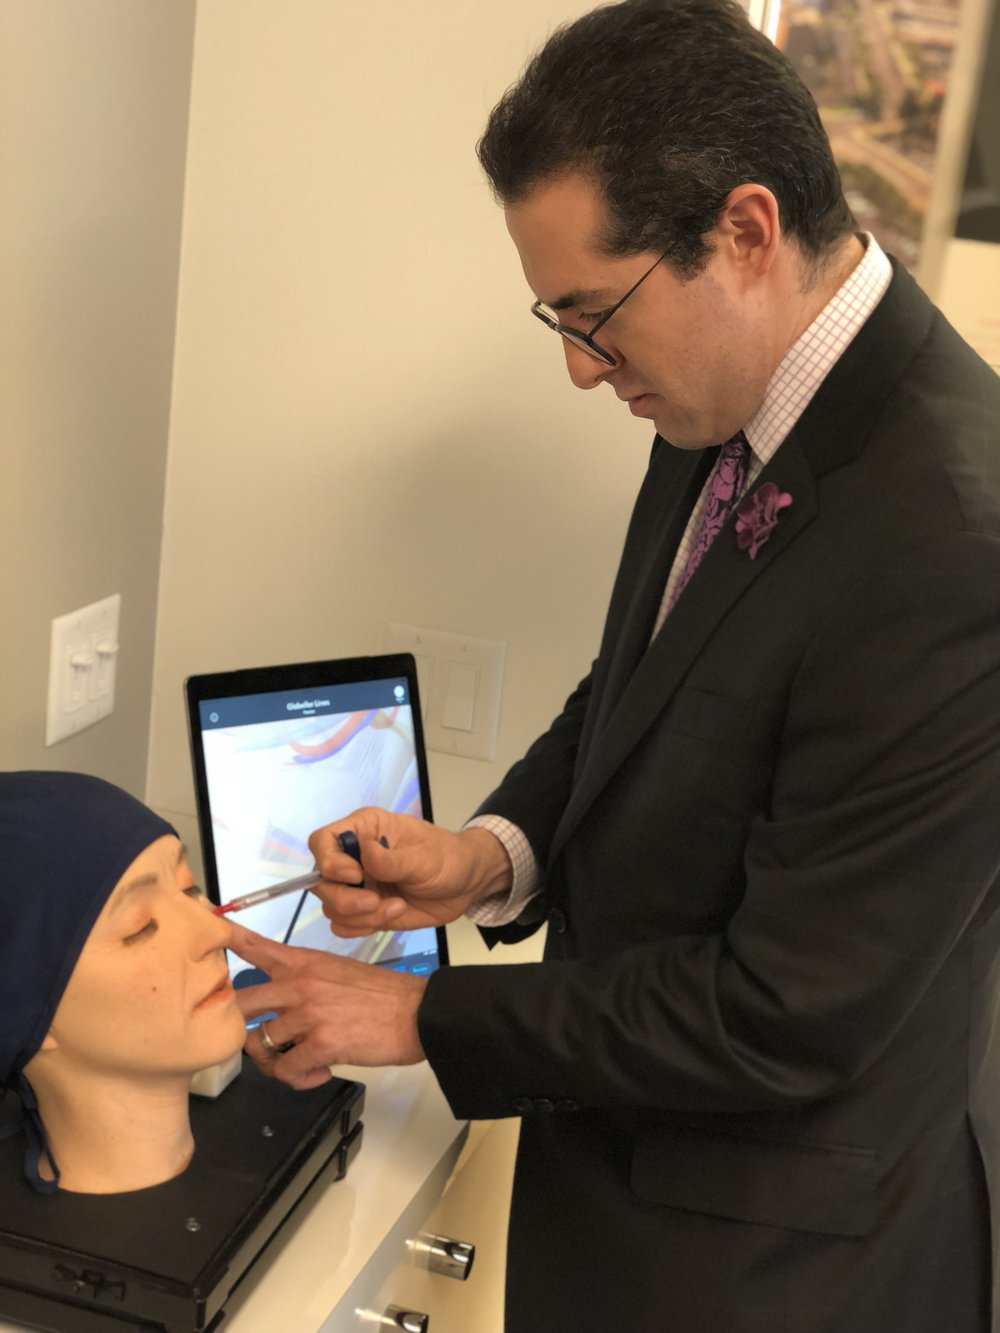 Dr. Jason Bloom, Facial Plastic Surgeon